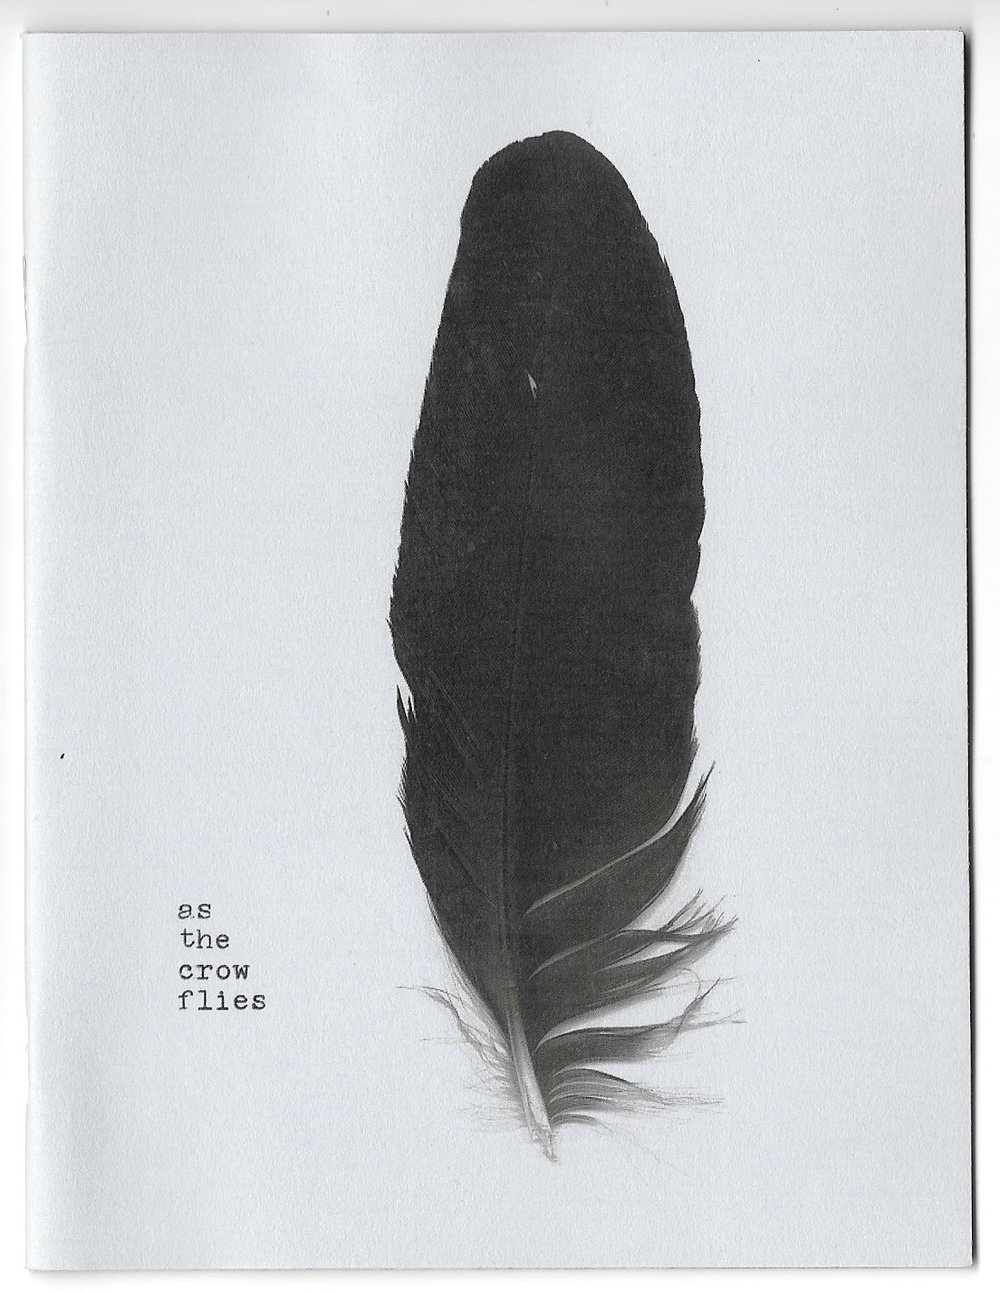 as the crow flies (zine version)